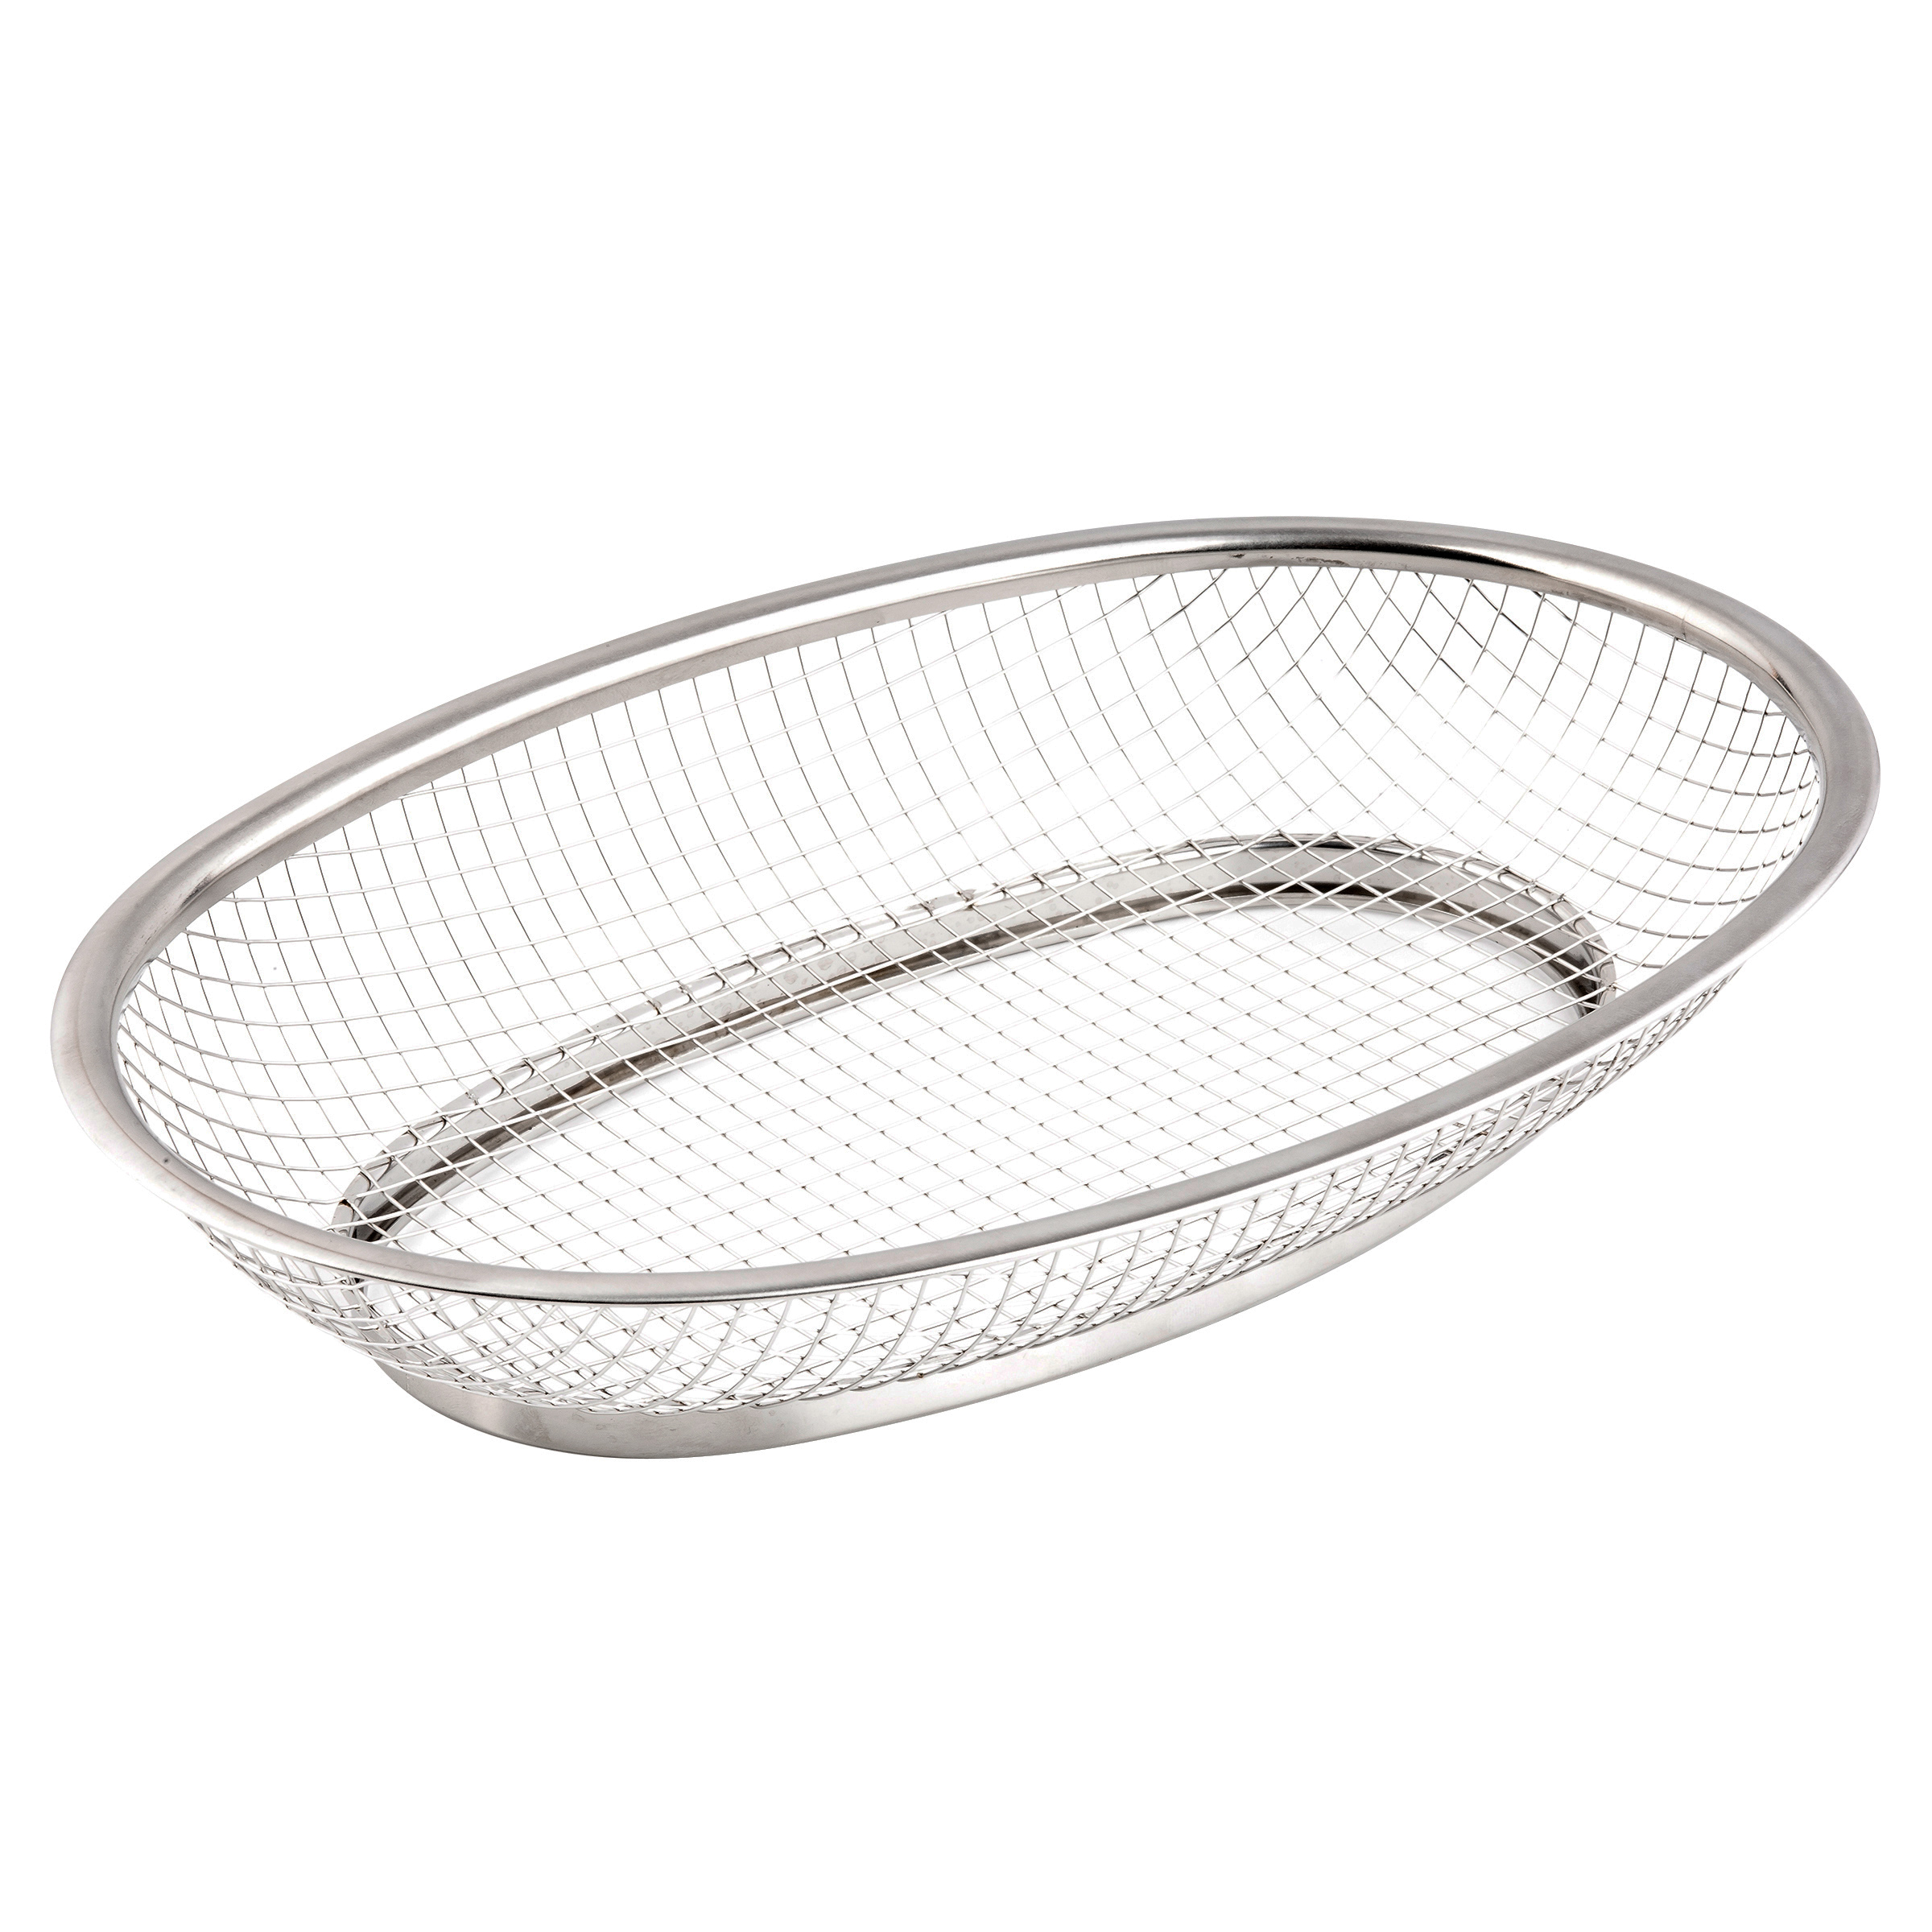 TableCraft Products 123472 basket, tabletop, metal